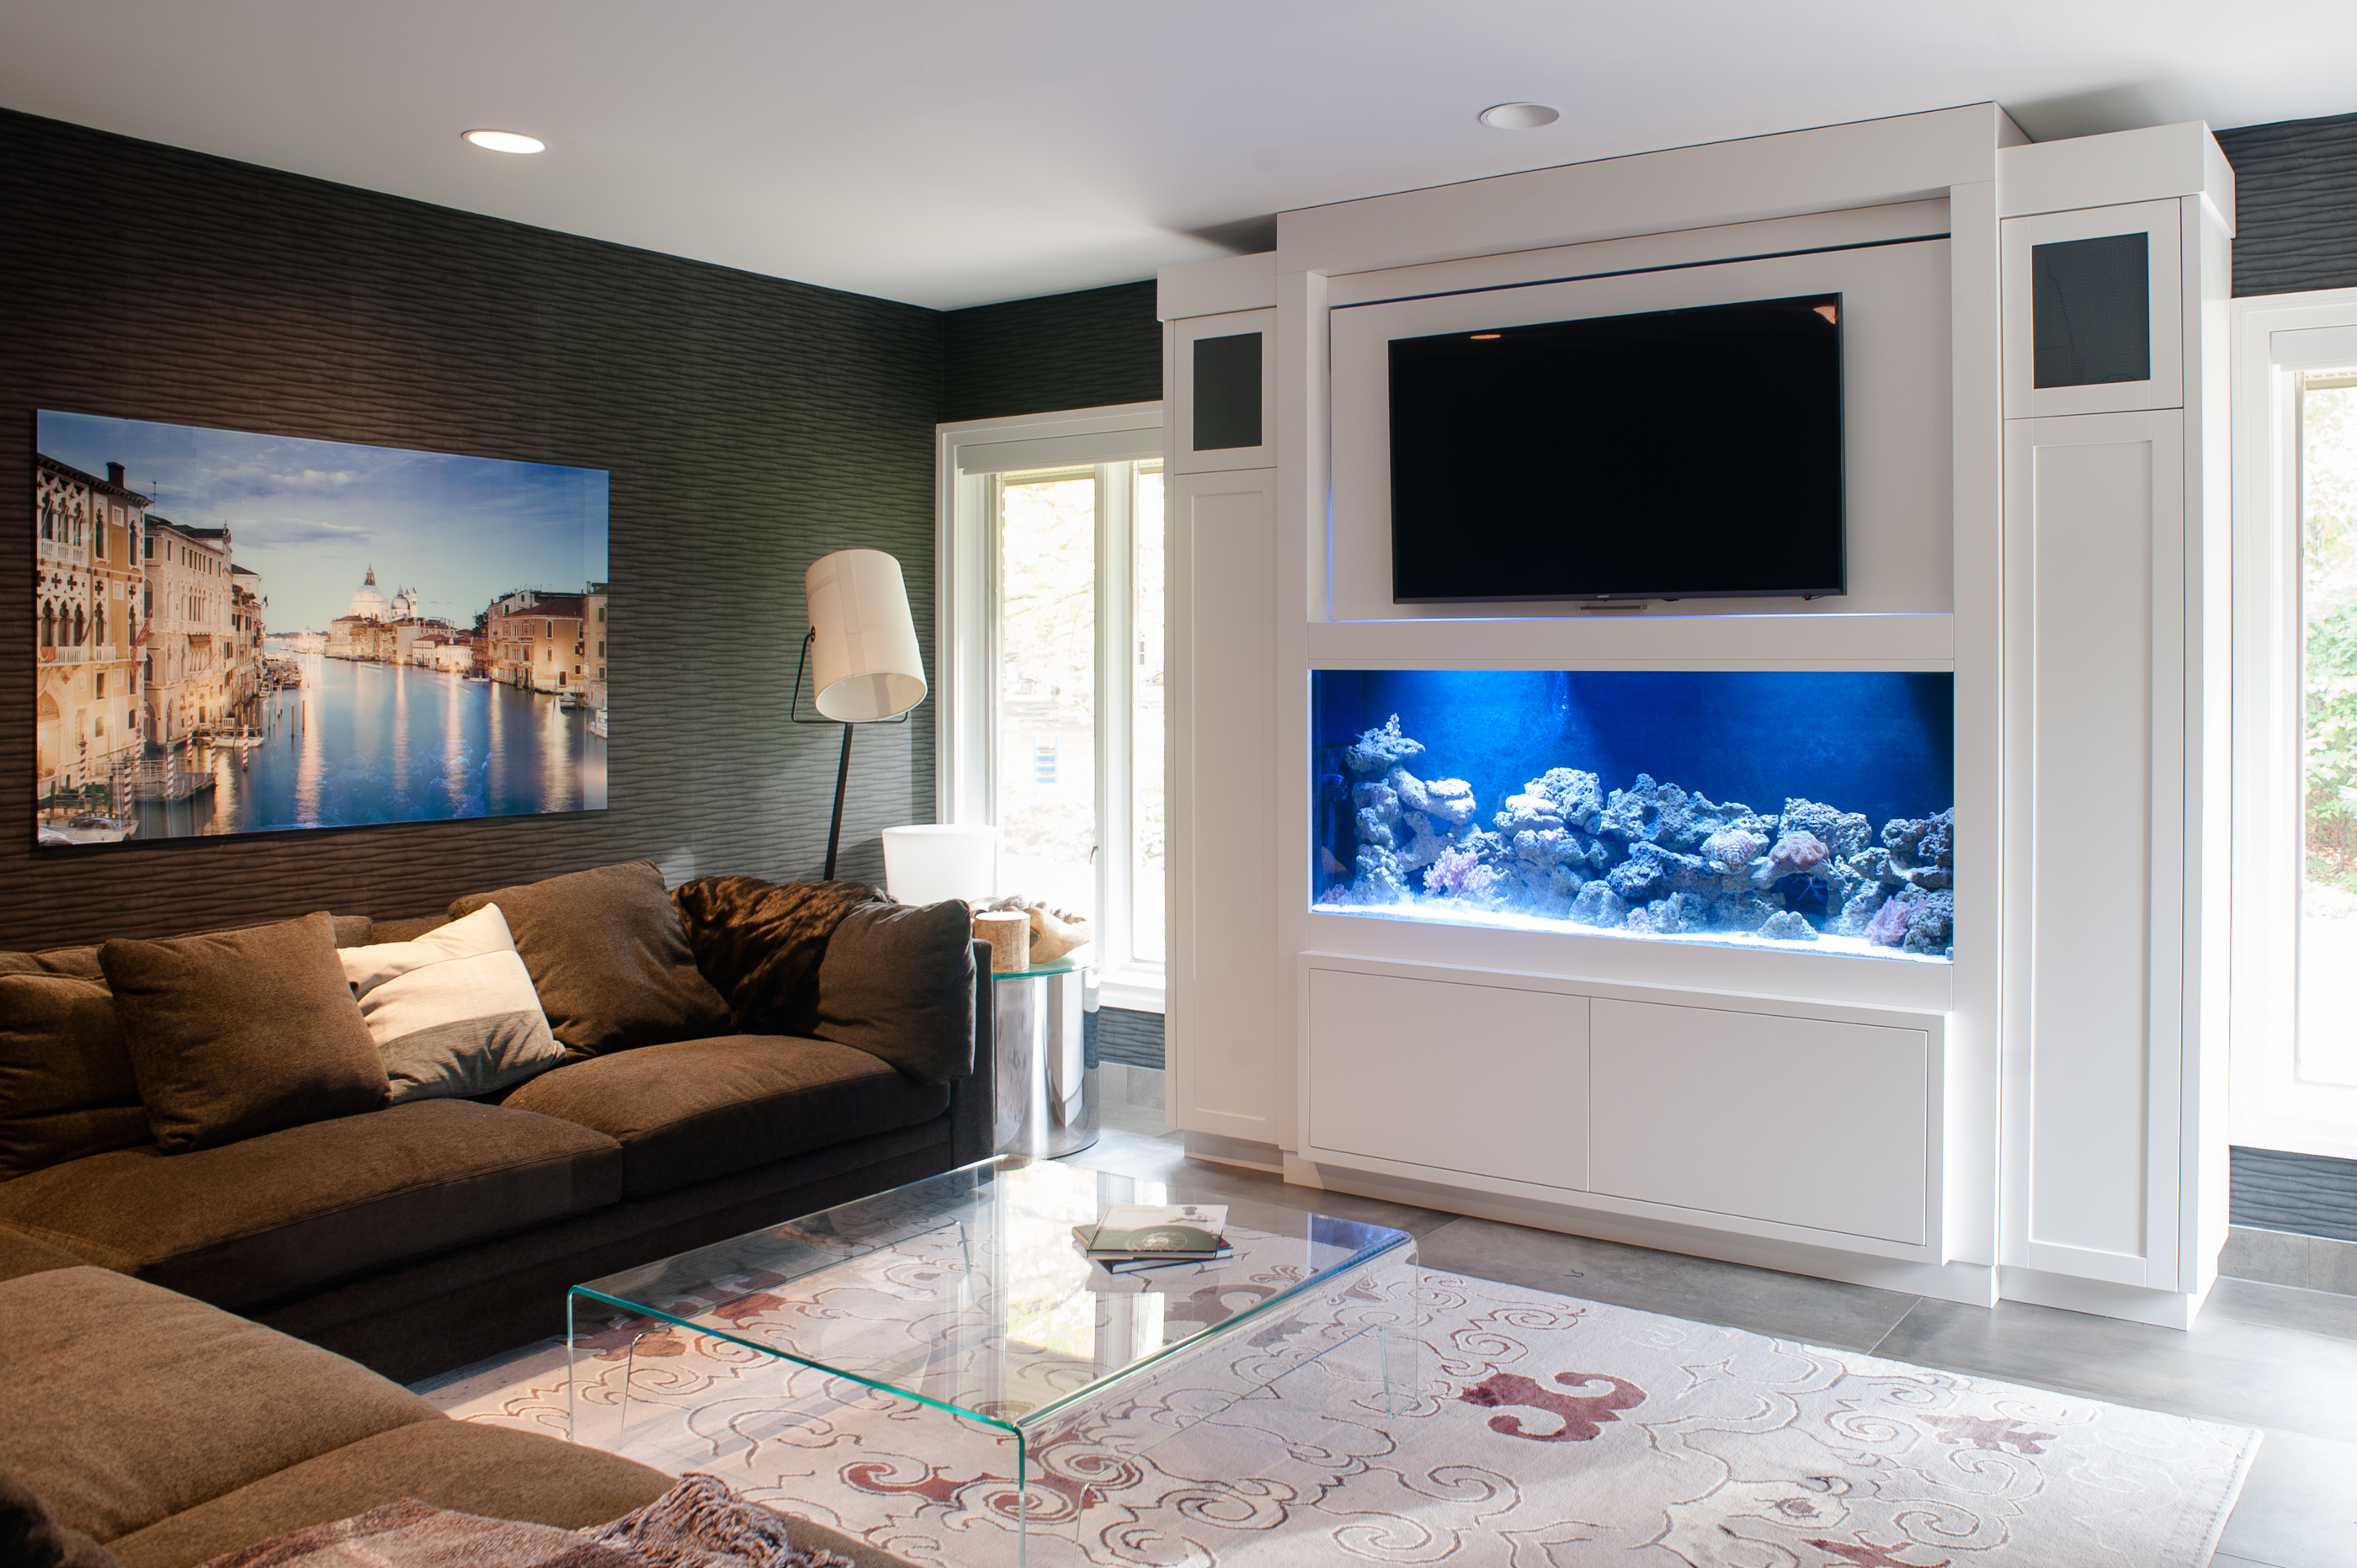 Copacetic Woodwork Design # Aquarium Meuble Tv